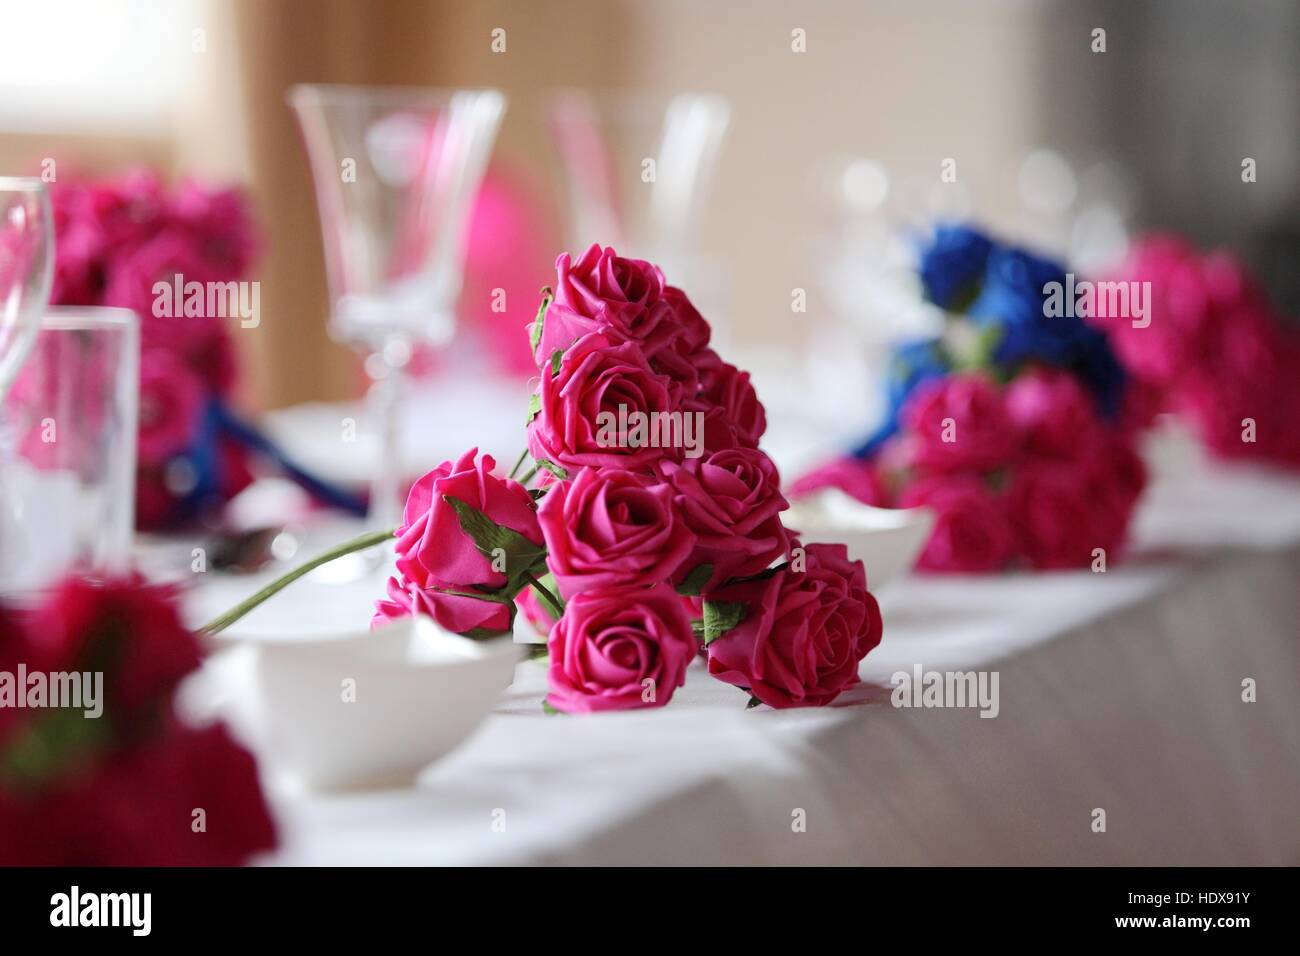 Wedding breakfast table laid ready for use with pink and blue silk flower arrangements, cutlery, crockery, glasses, - Stock Image